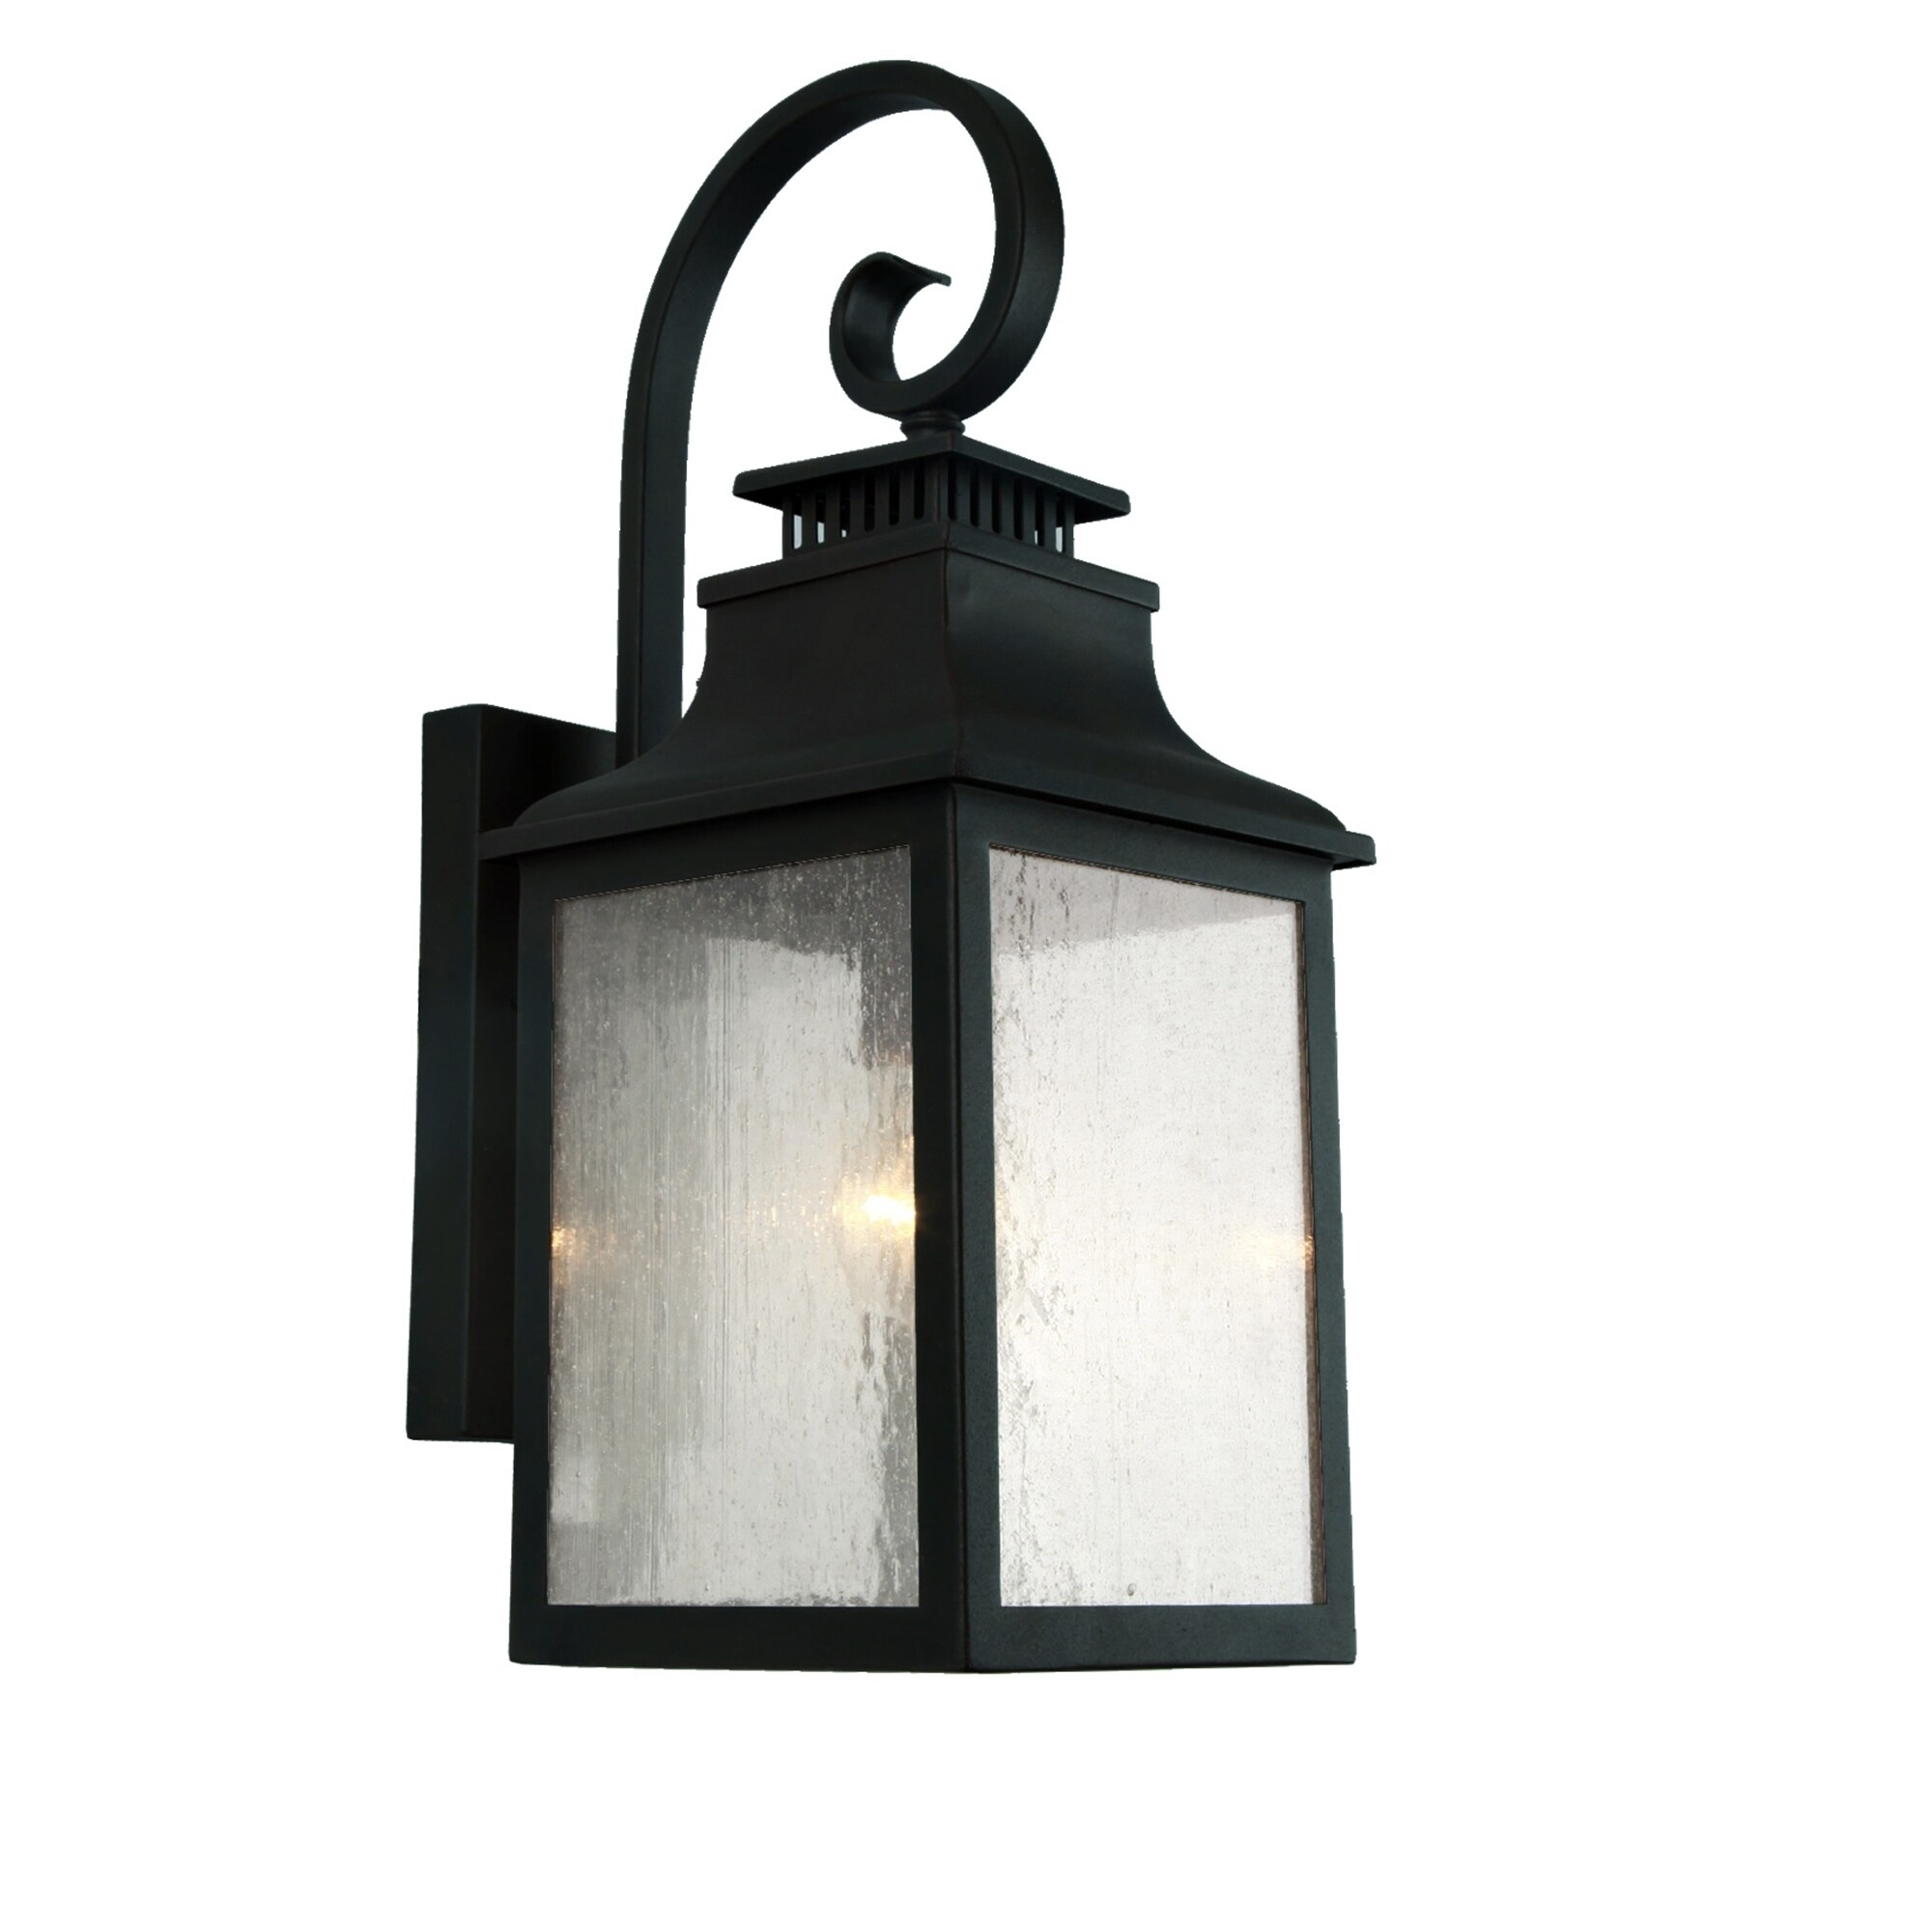 Shop Black Friday Deals On Y Decor Morgan 1 Light Outdoor Wall Mounted Light In Imperial Black Overstock 19844140